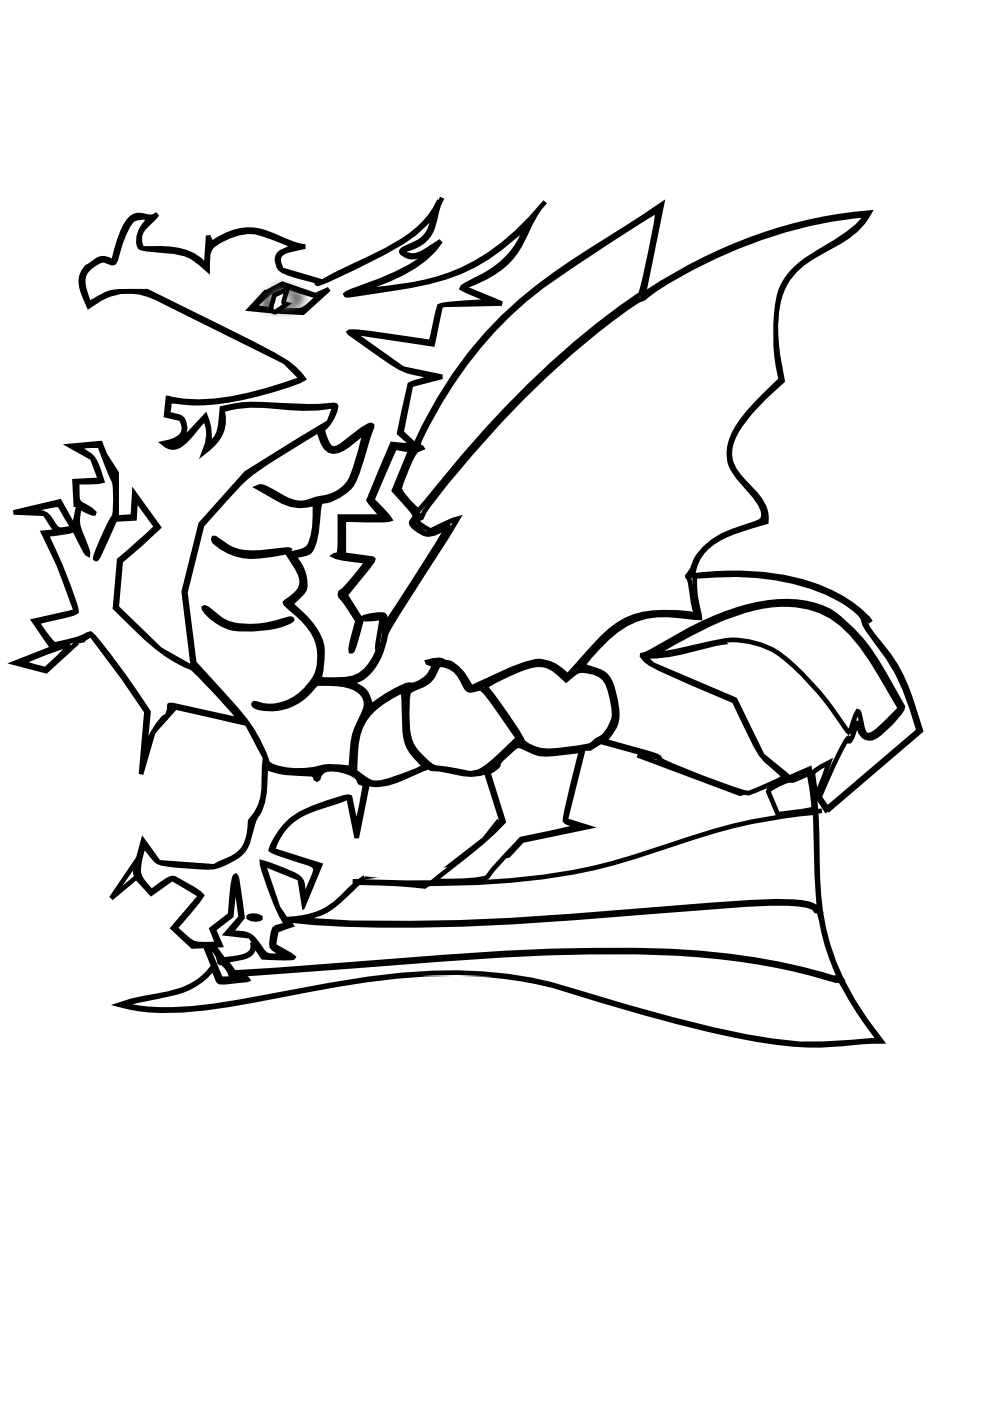 dragon images for kids color the dragon coloring pages in websites kids dragon for images